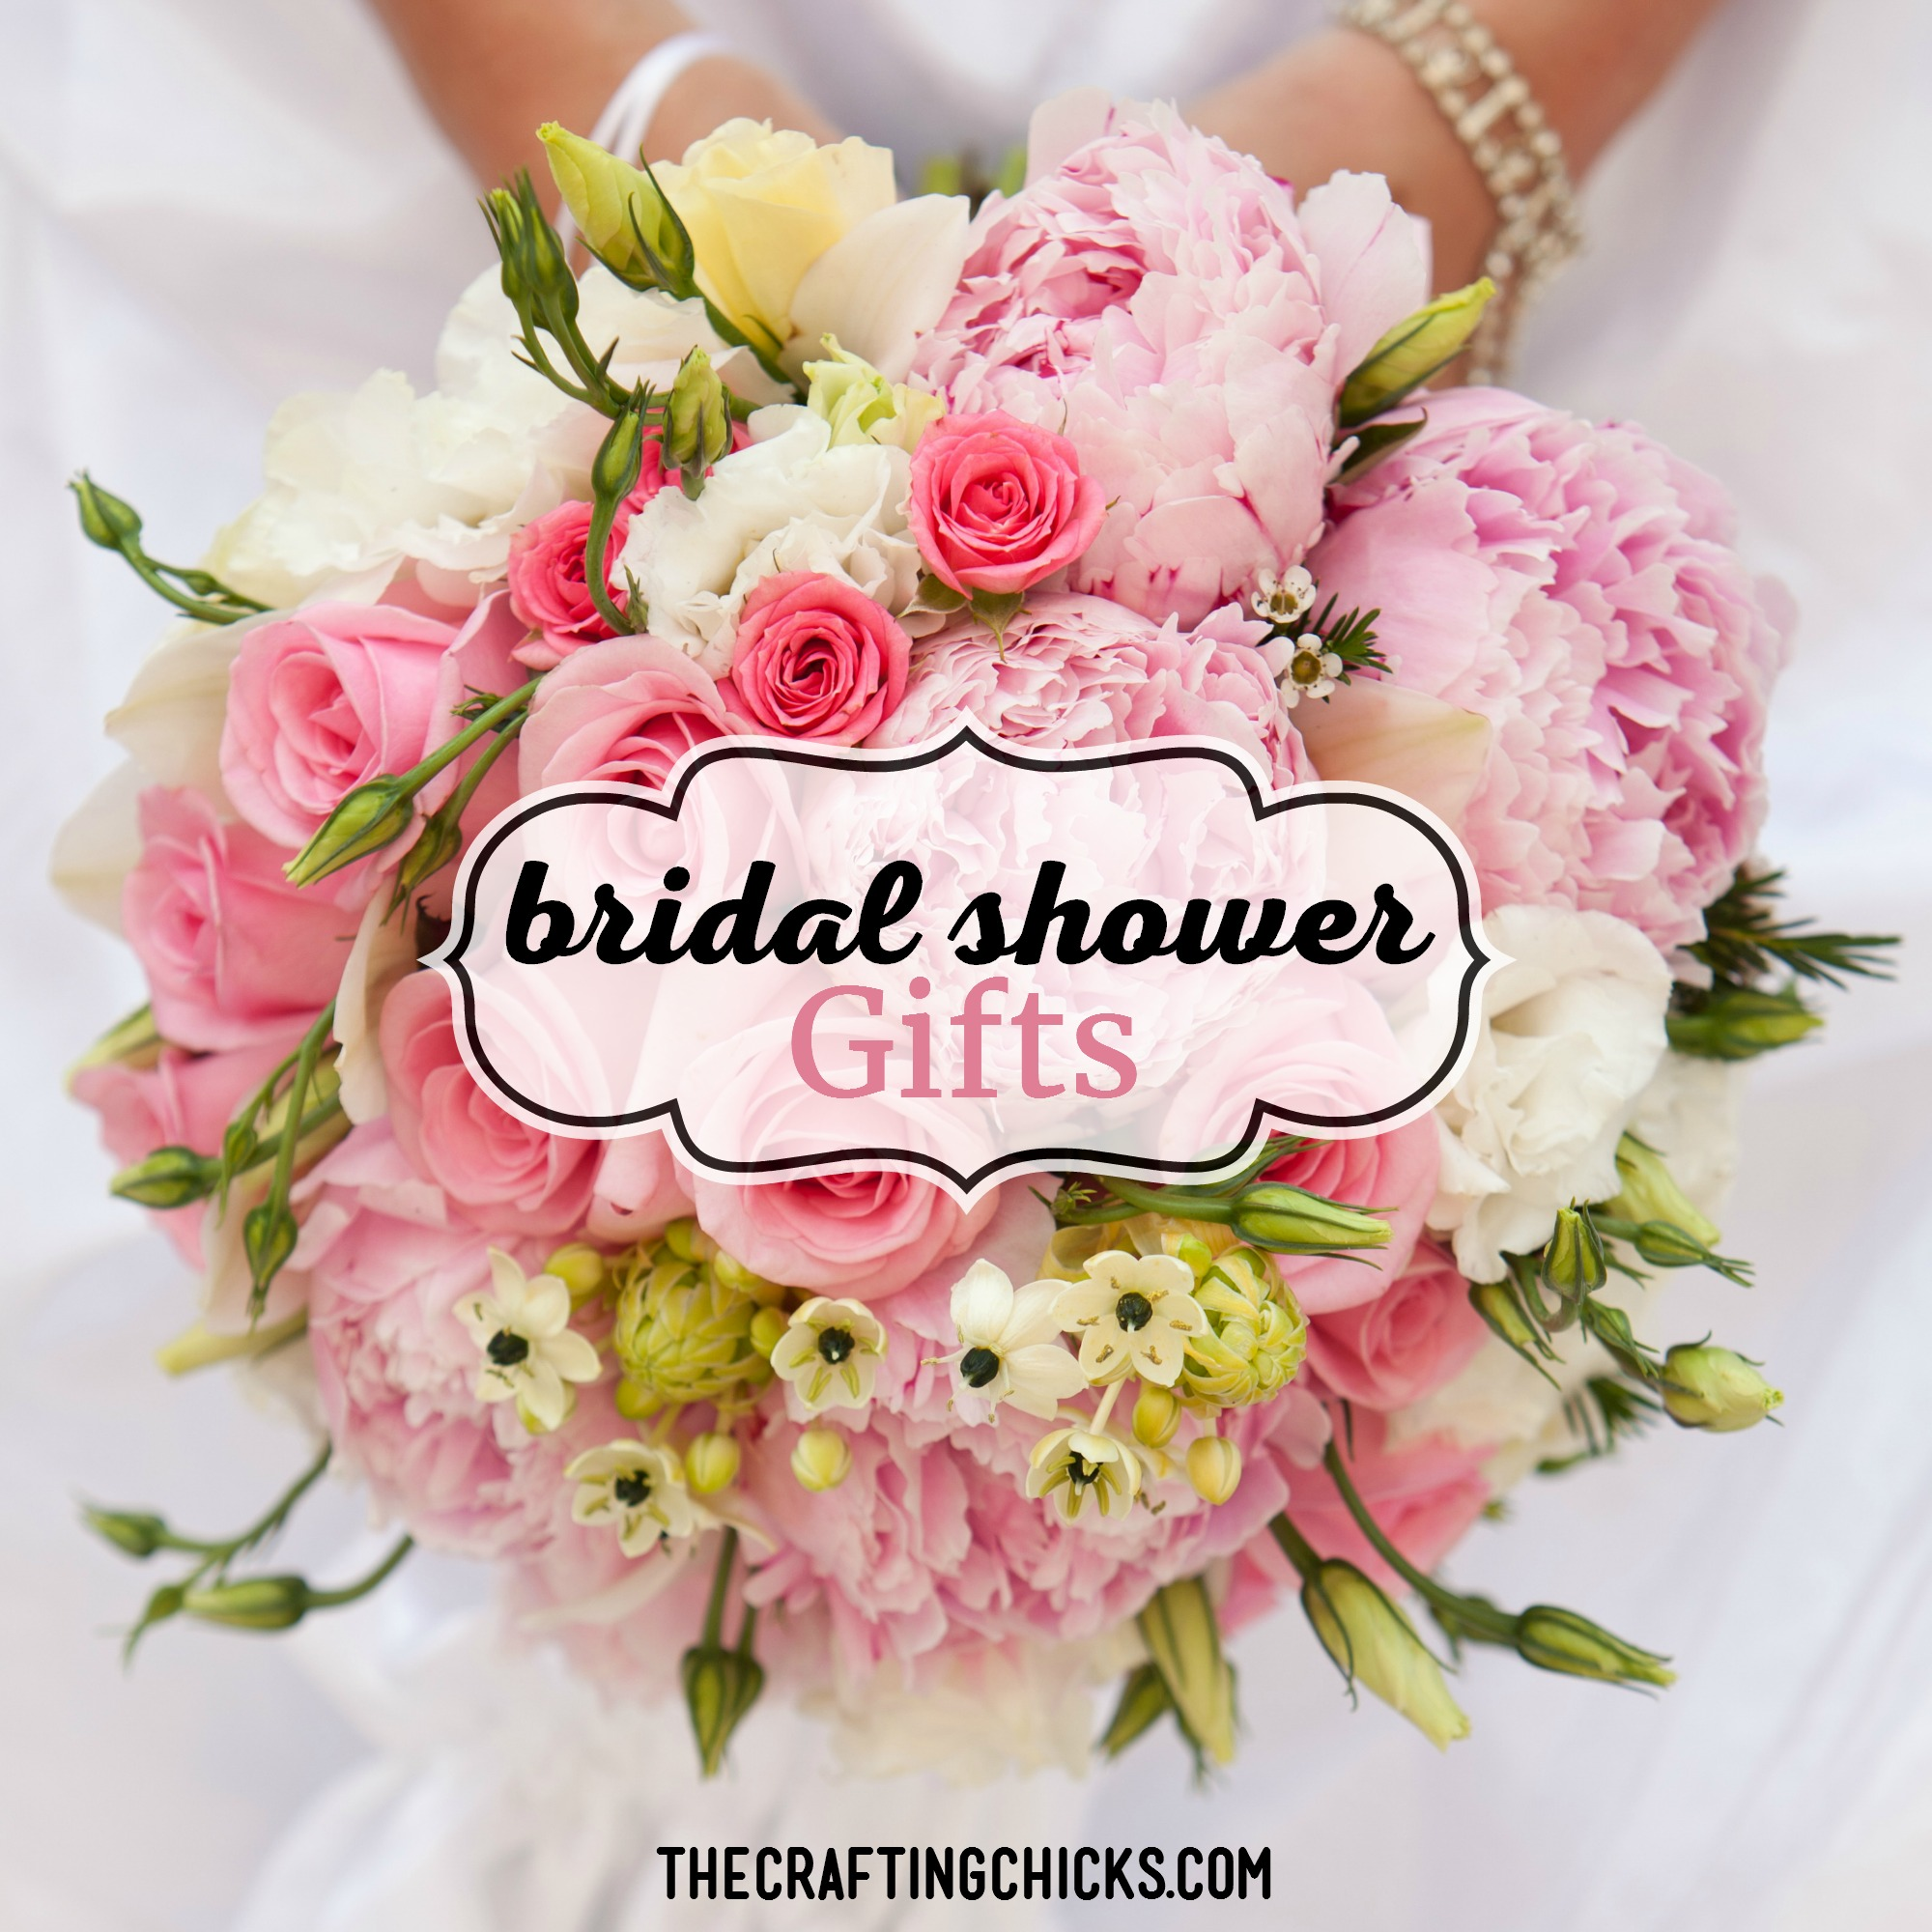 for chicks best gifts e way amazing the how is crafting great shower just be bridal show blog to bride a